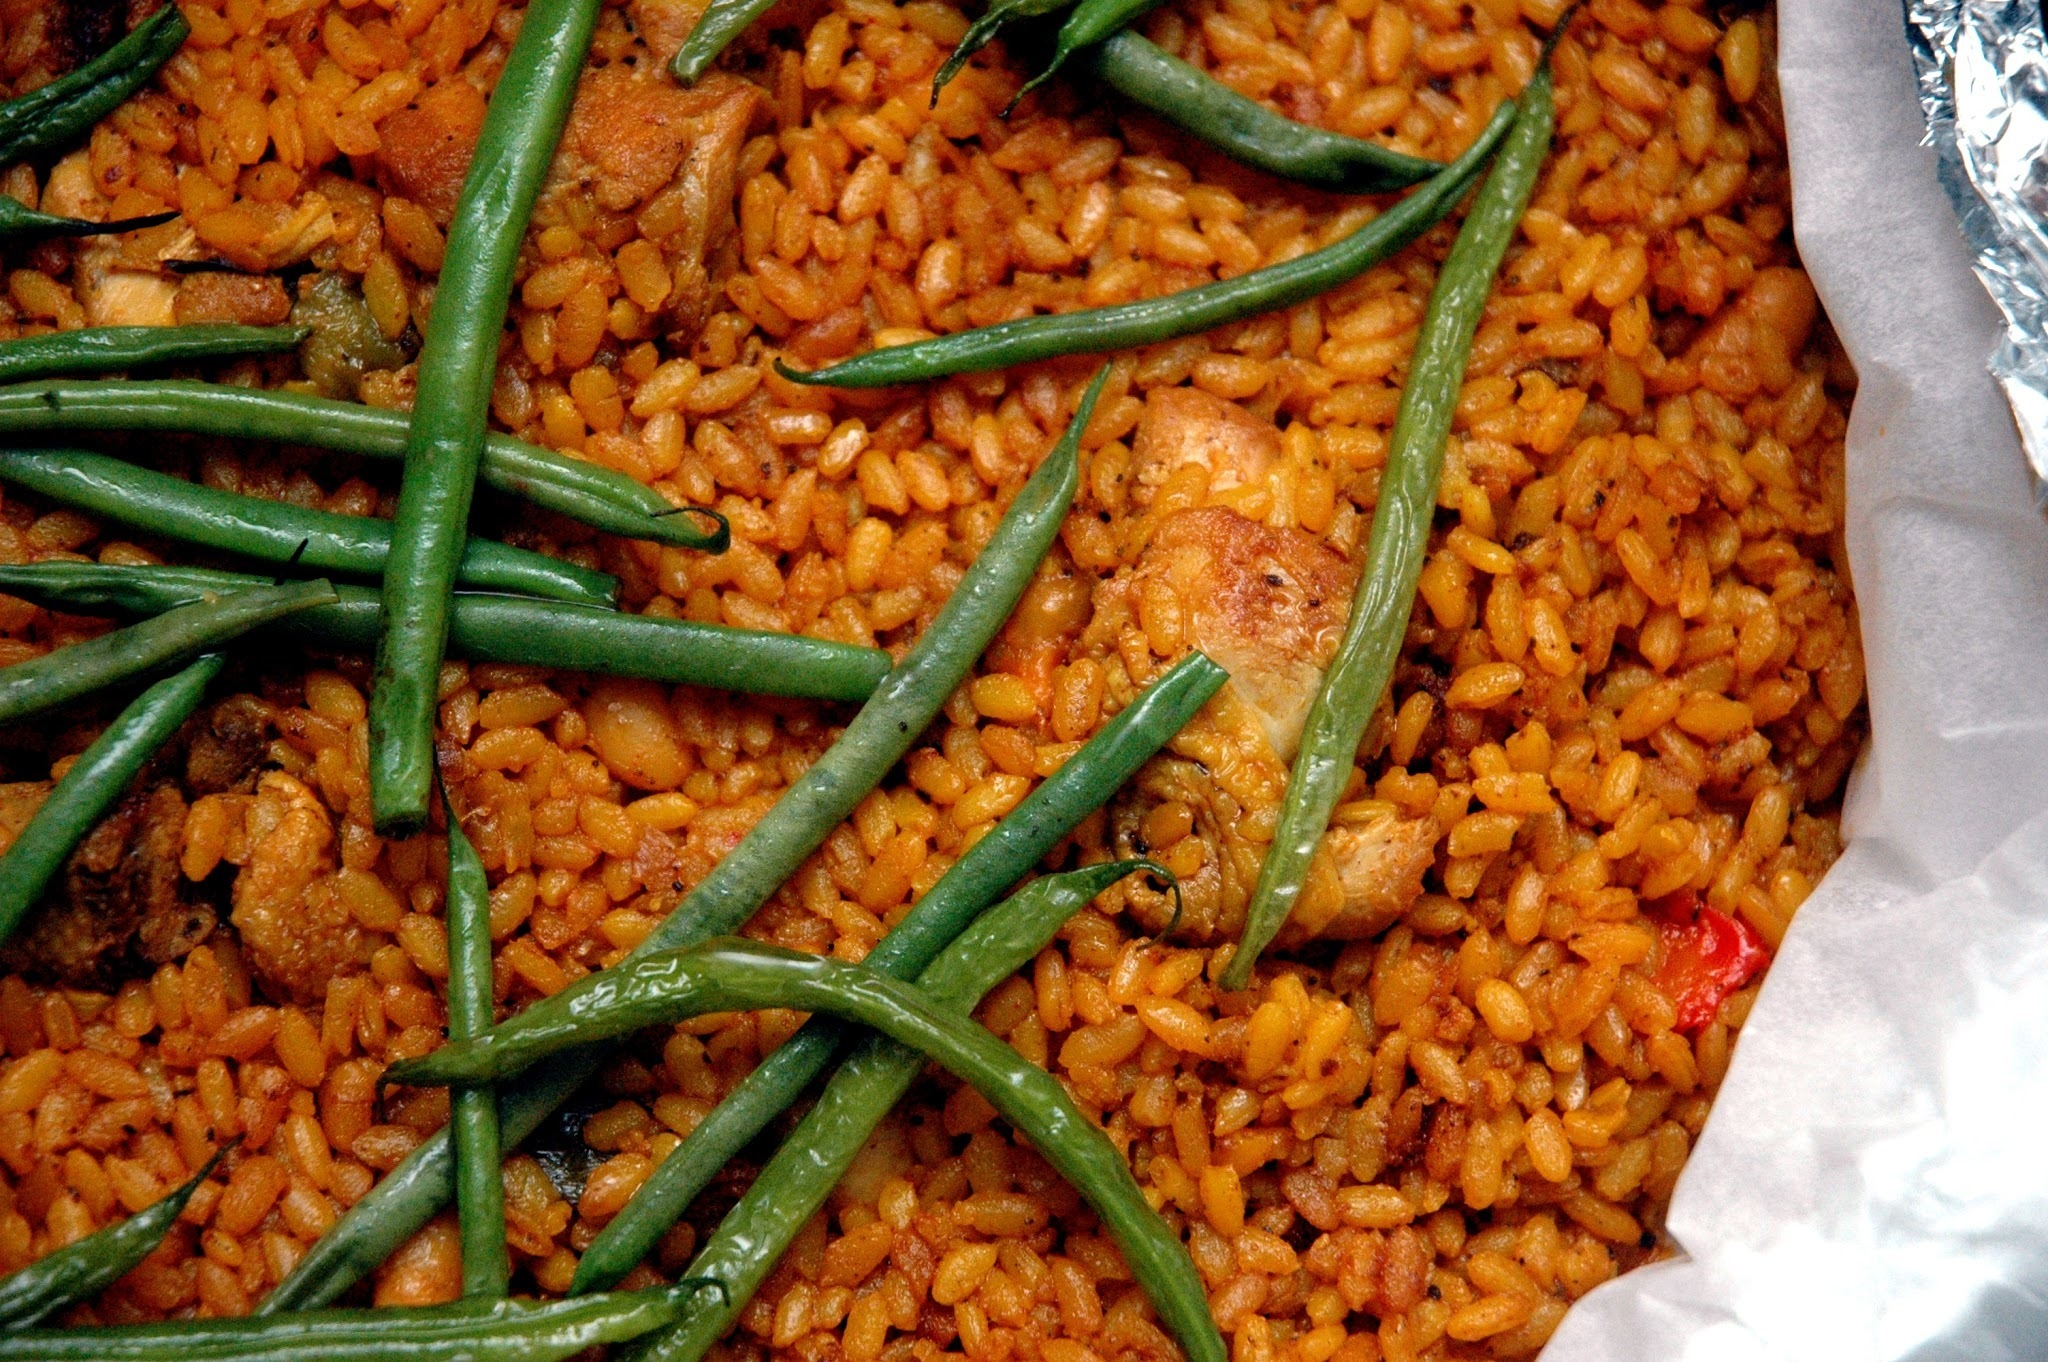 The Taste of Spain Right at Your Doorstep with Arrozeria's Paella Valenciana